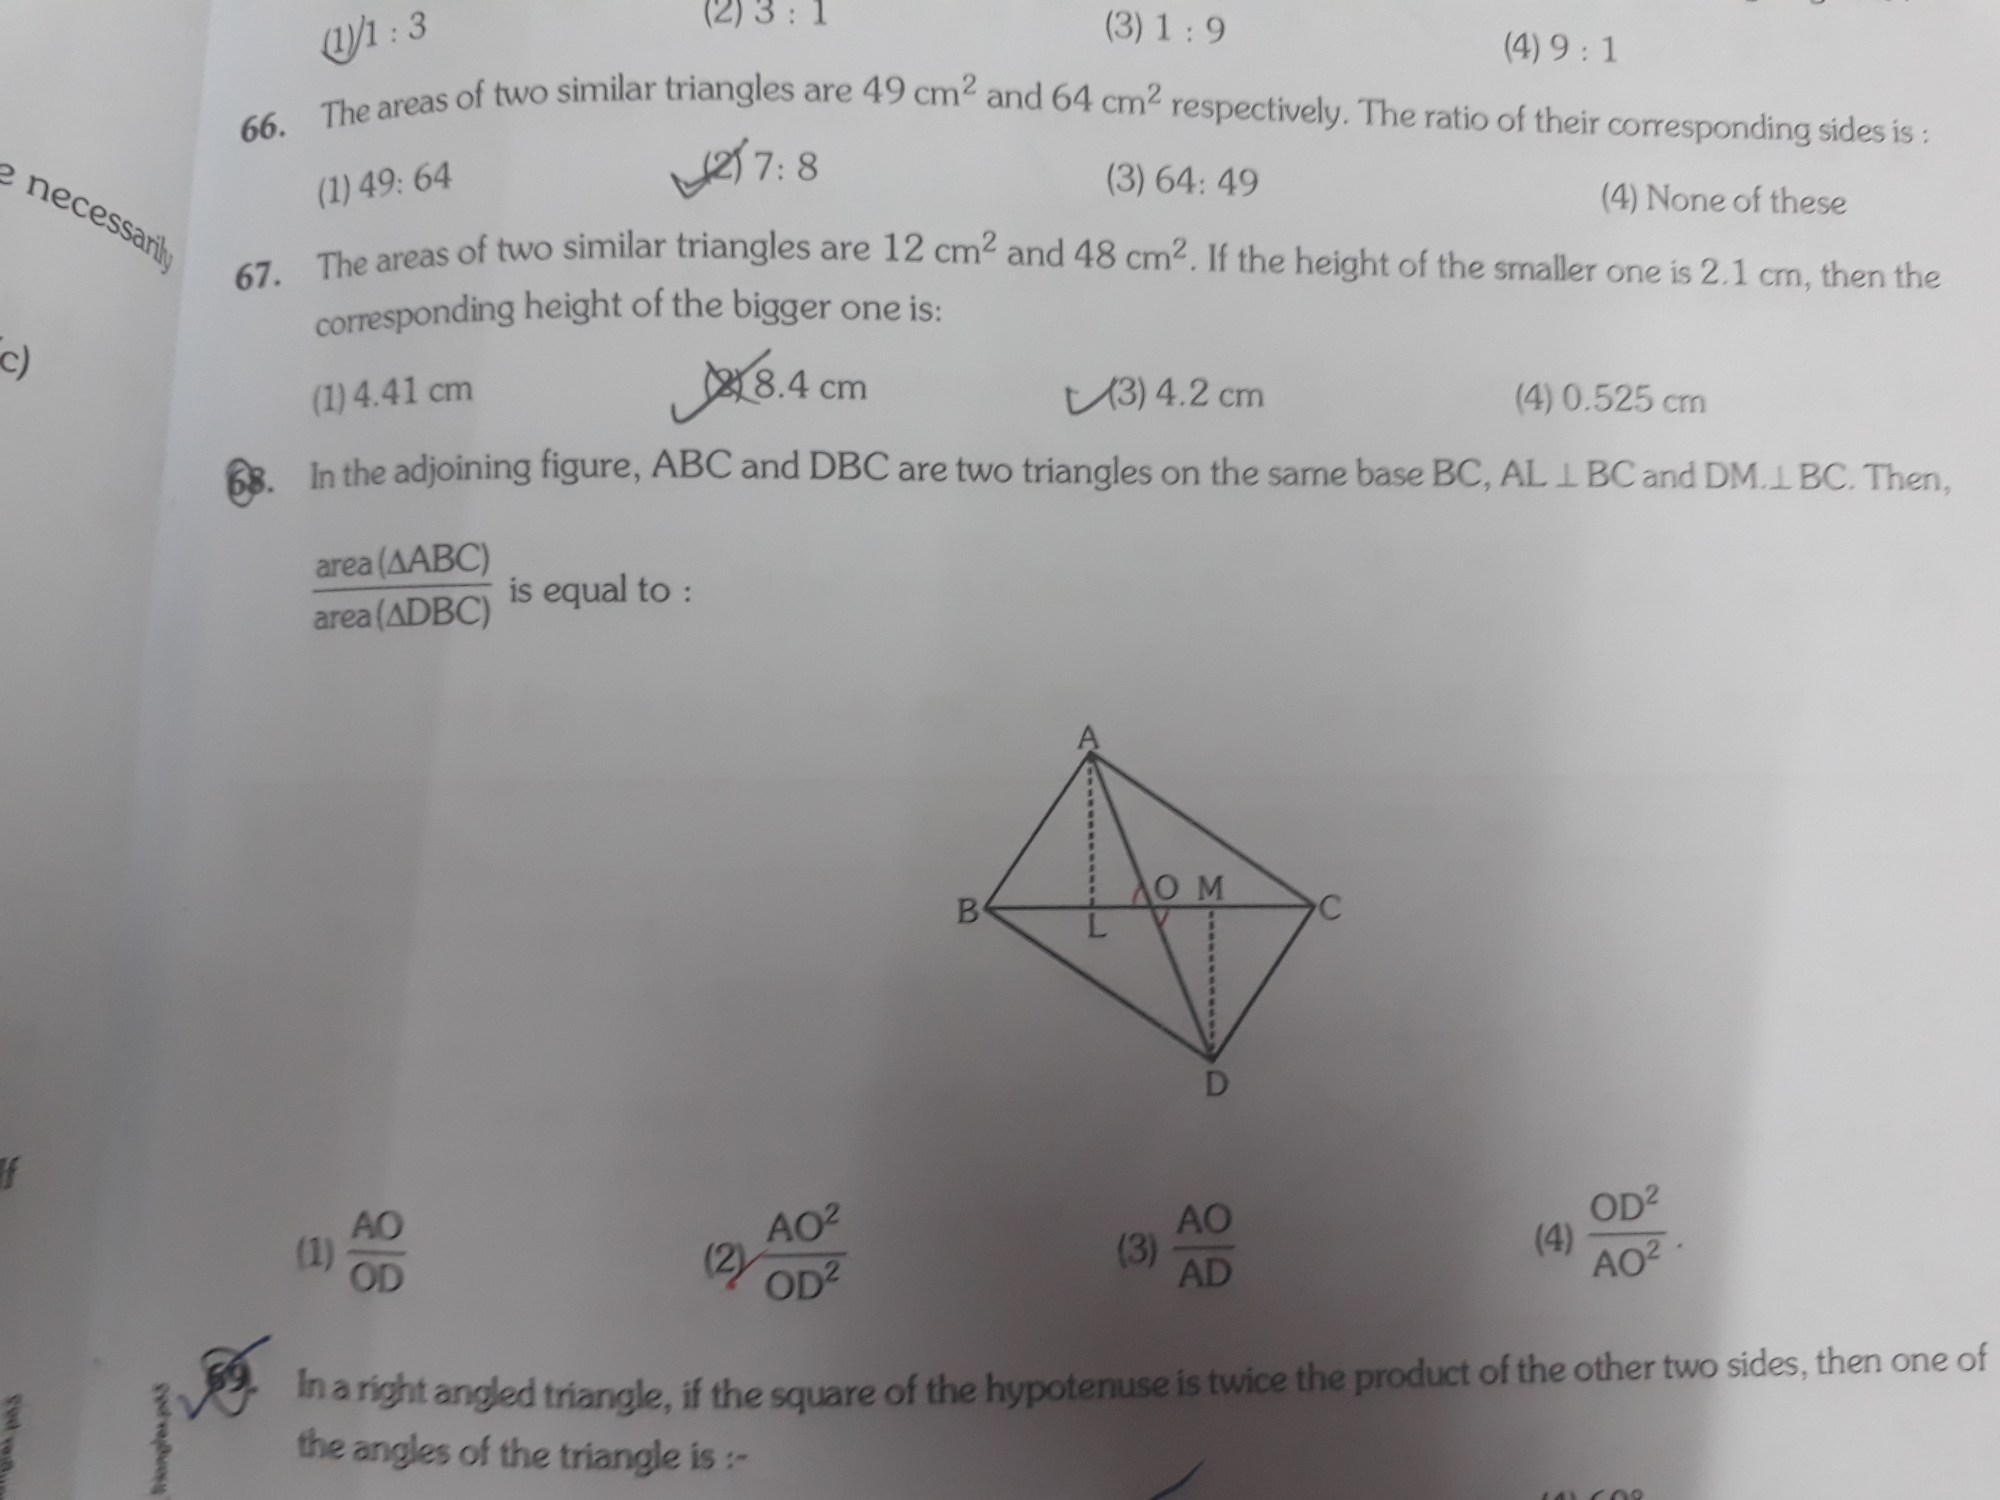 hight resolution of similar triangles Questions and Answers - TopperLearning